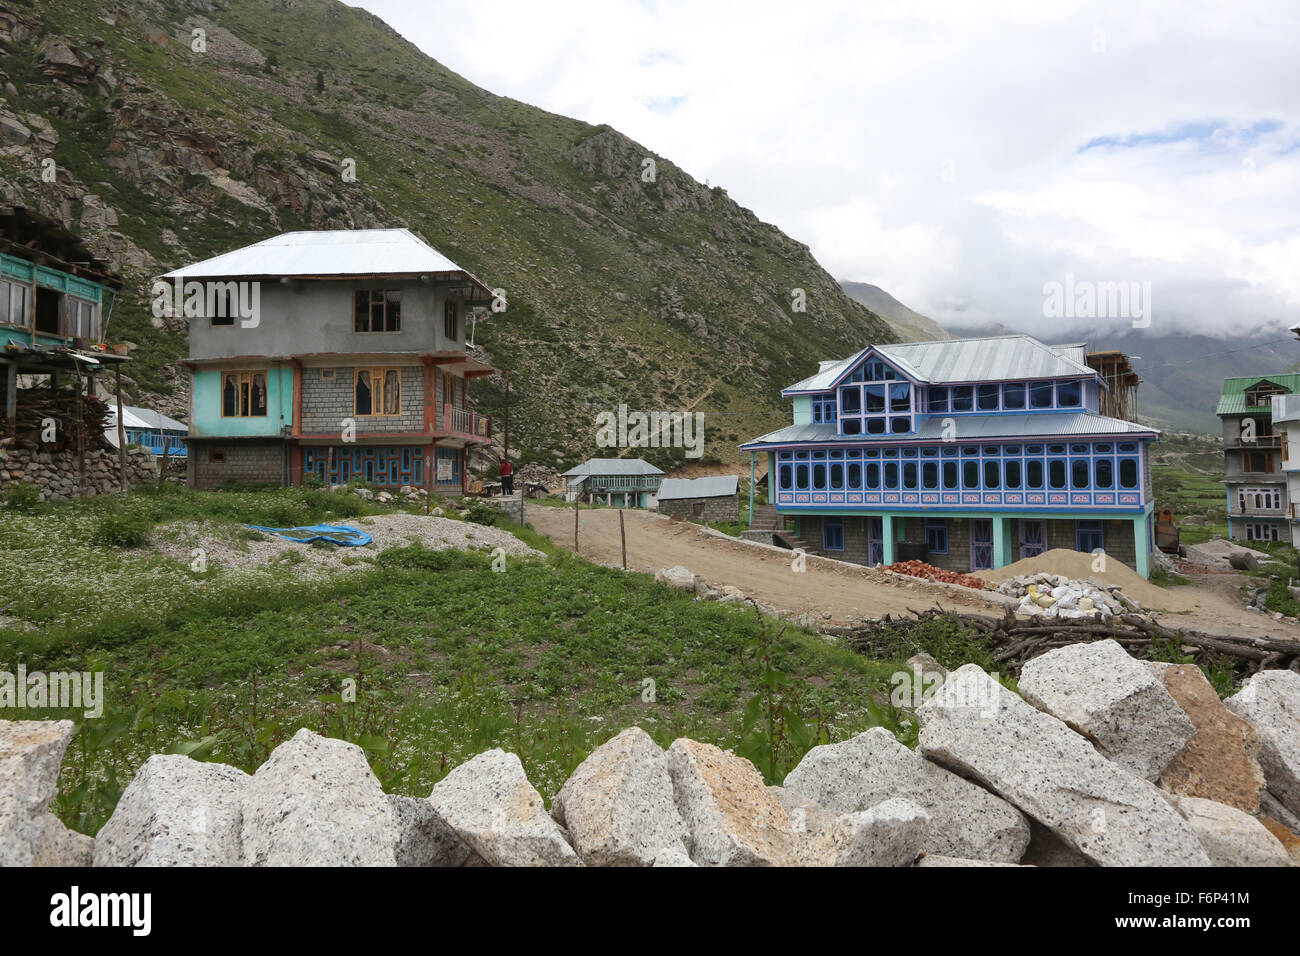 SPITI VALLEY - Chitkul Village Last inhabited village near the Indo-China border Himachal Pradesh , India Stock Photo